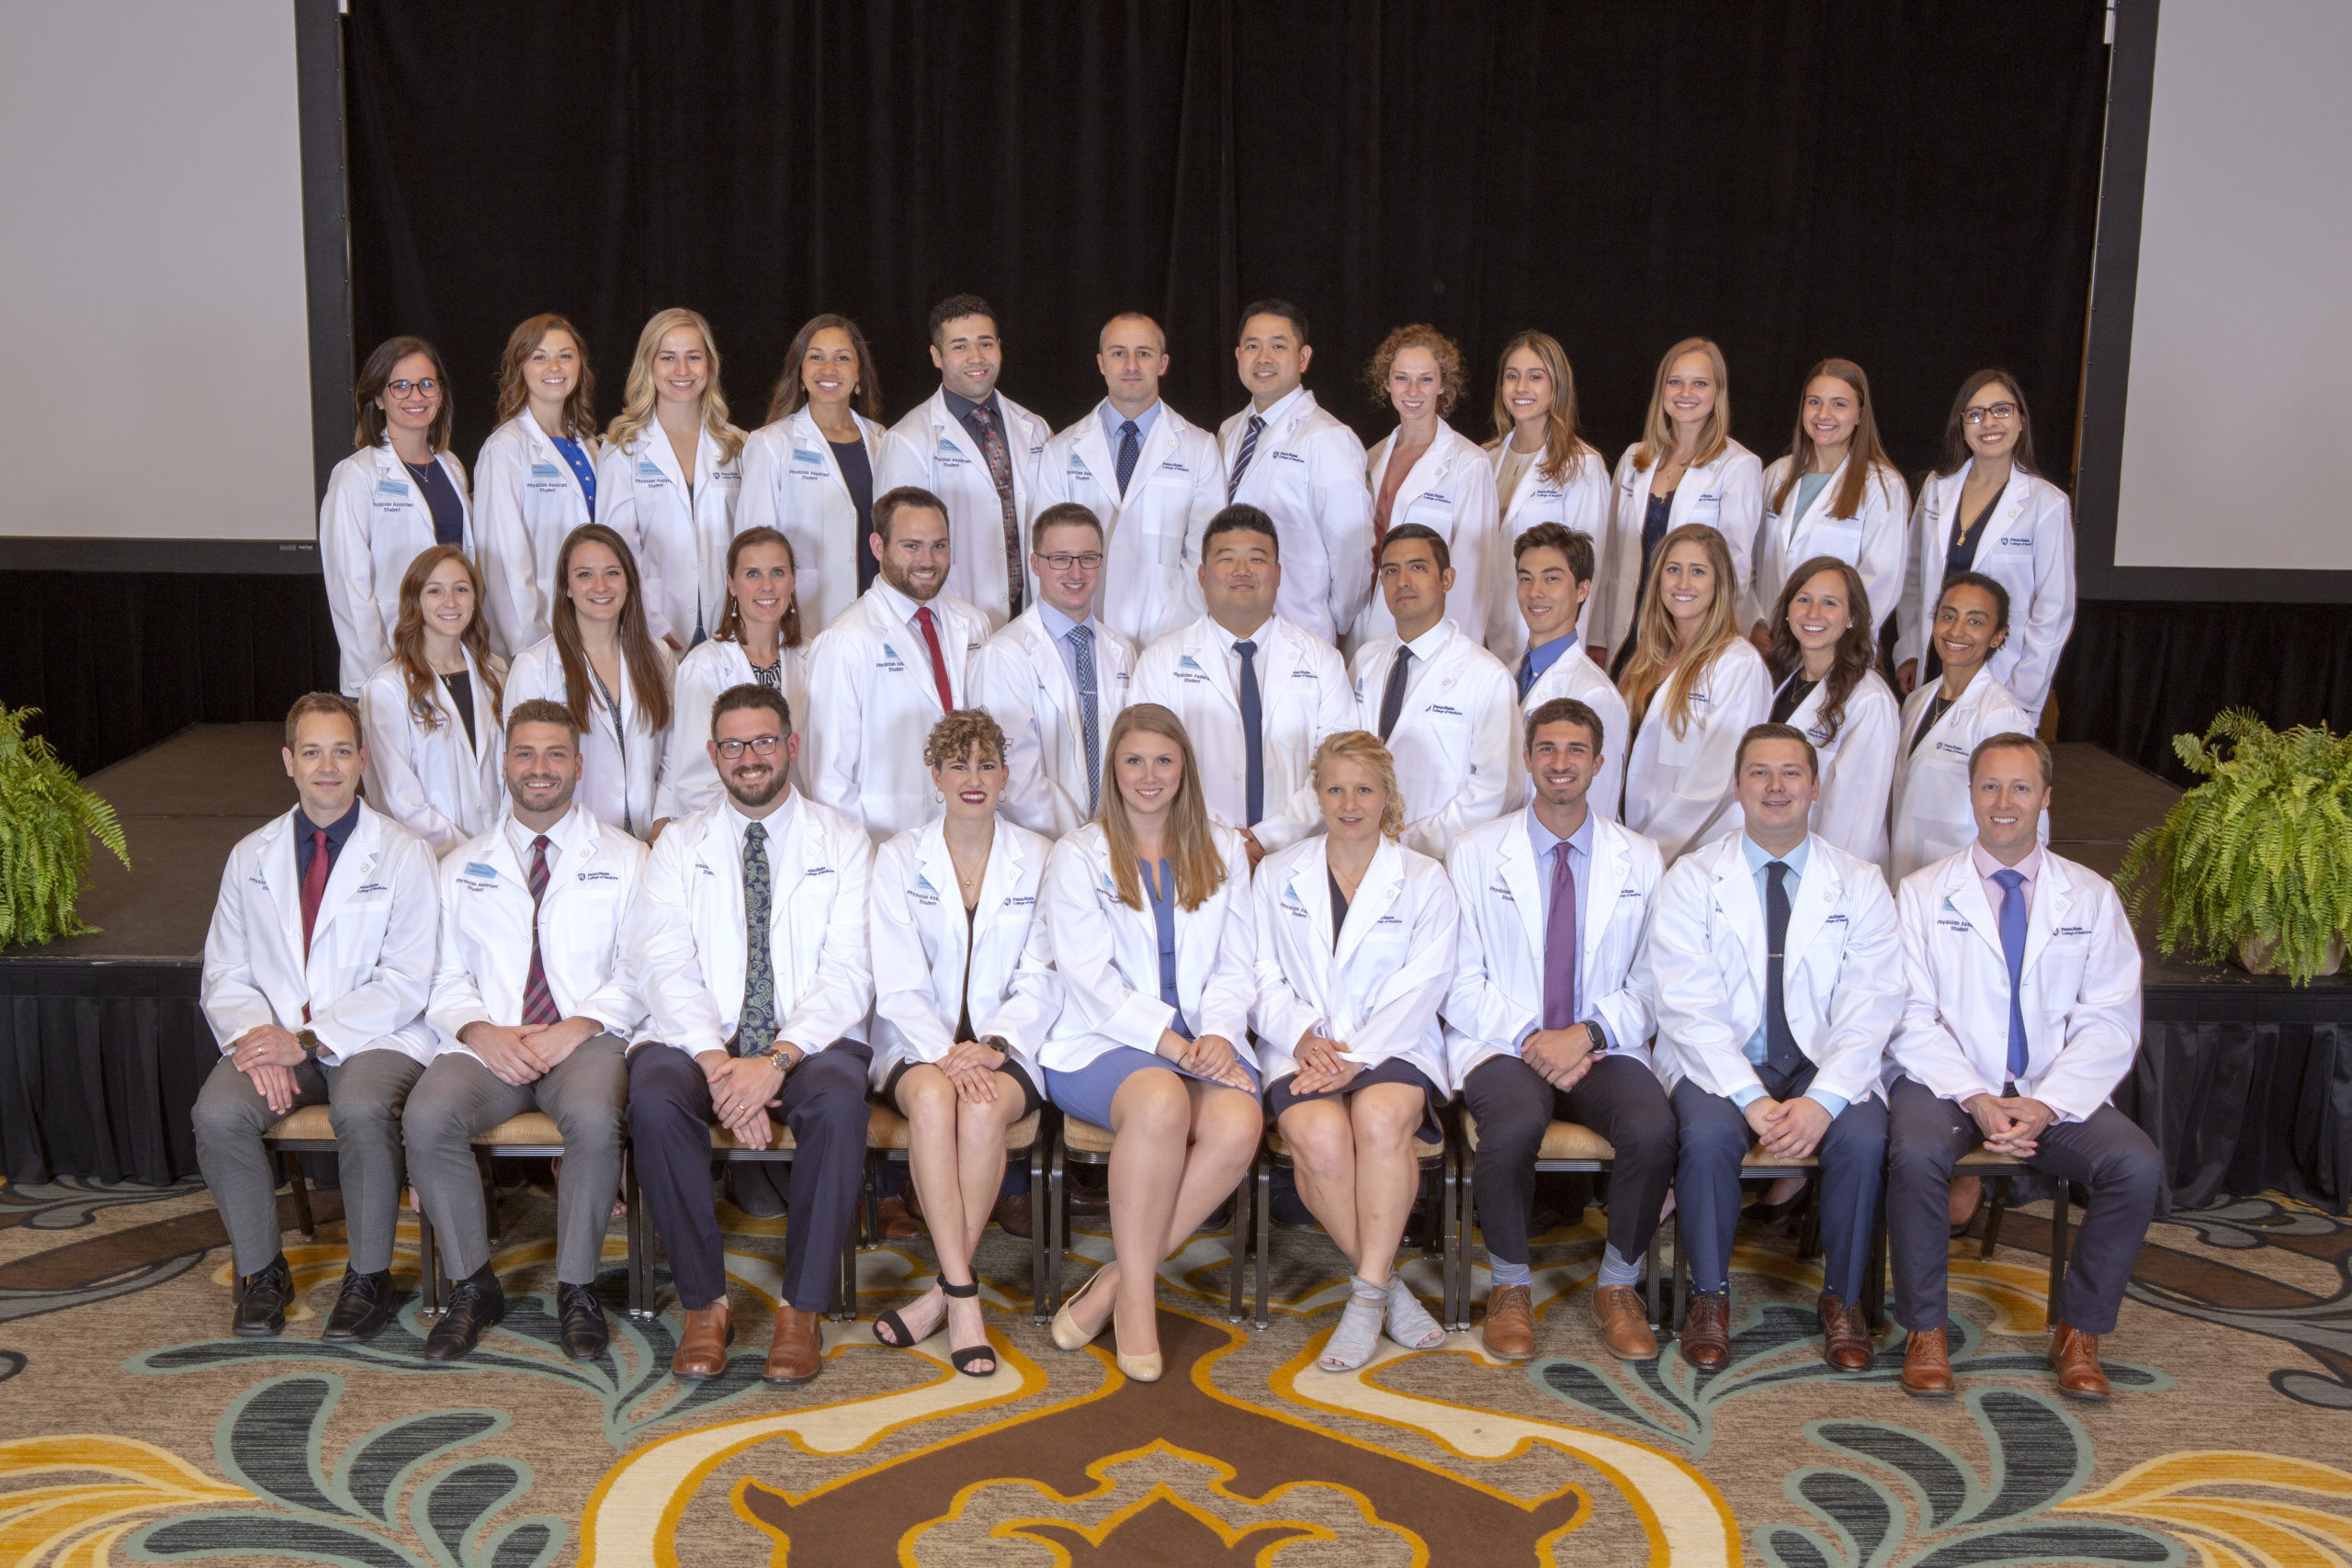 A large group of physician assistant students are pictured in three rows.